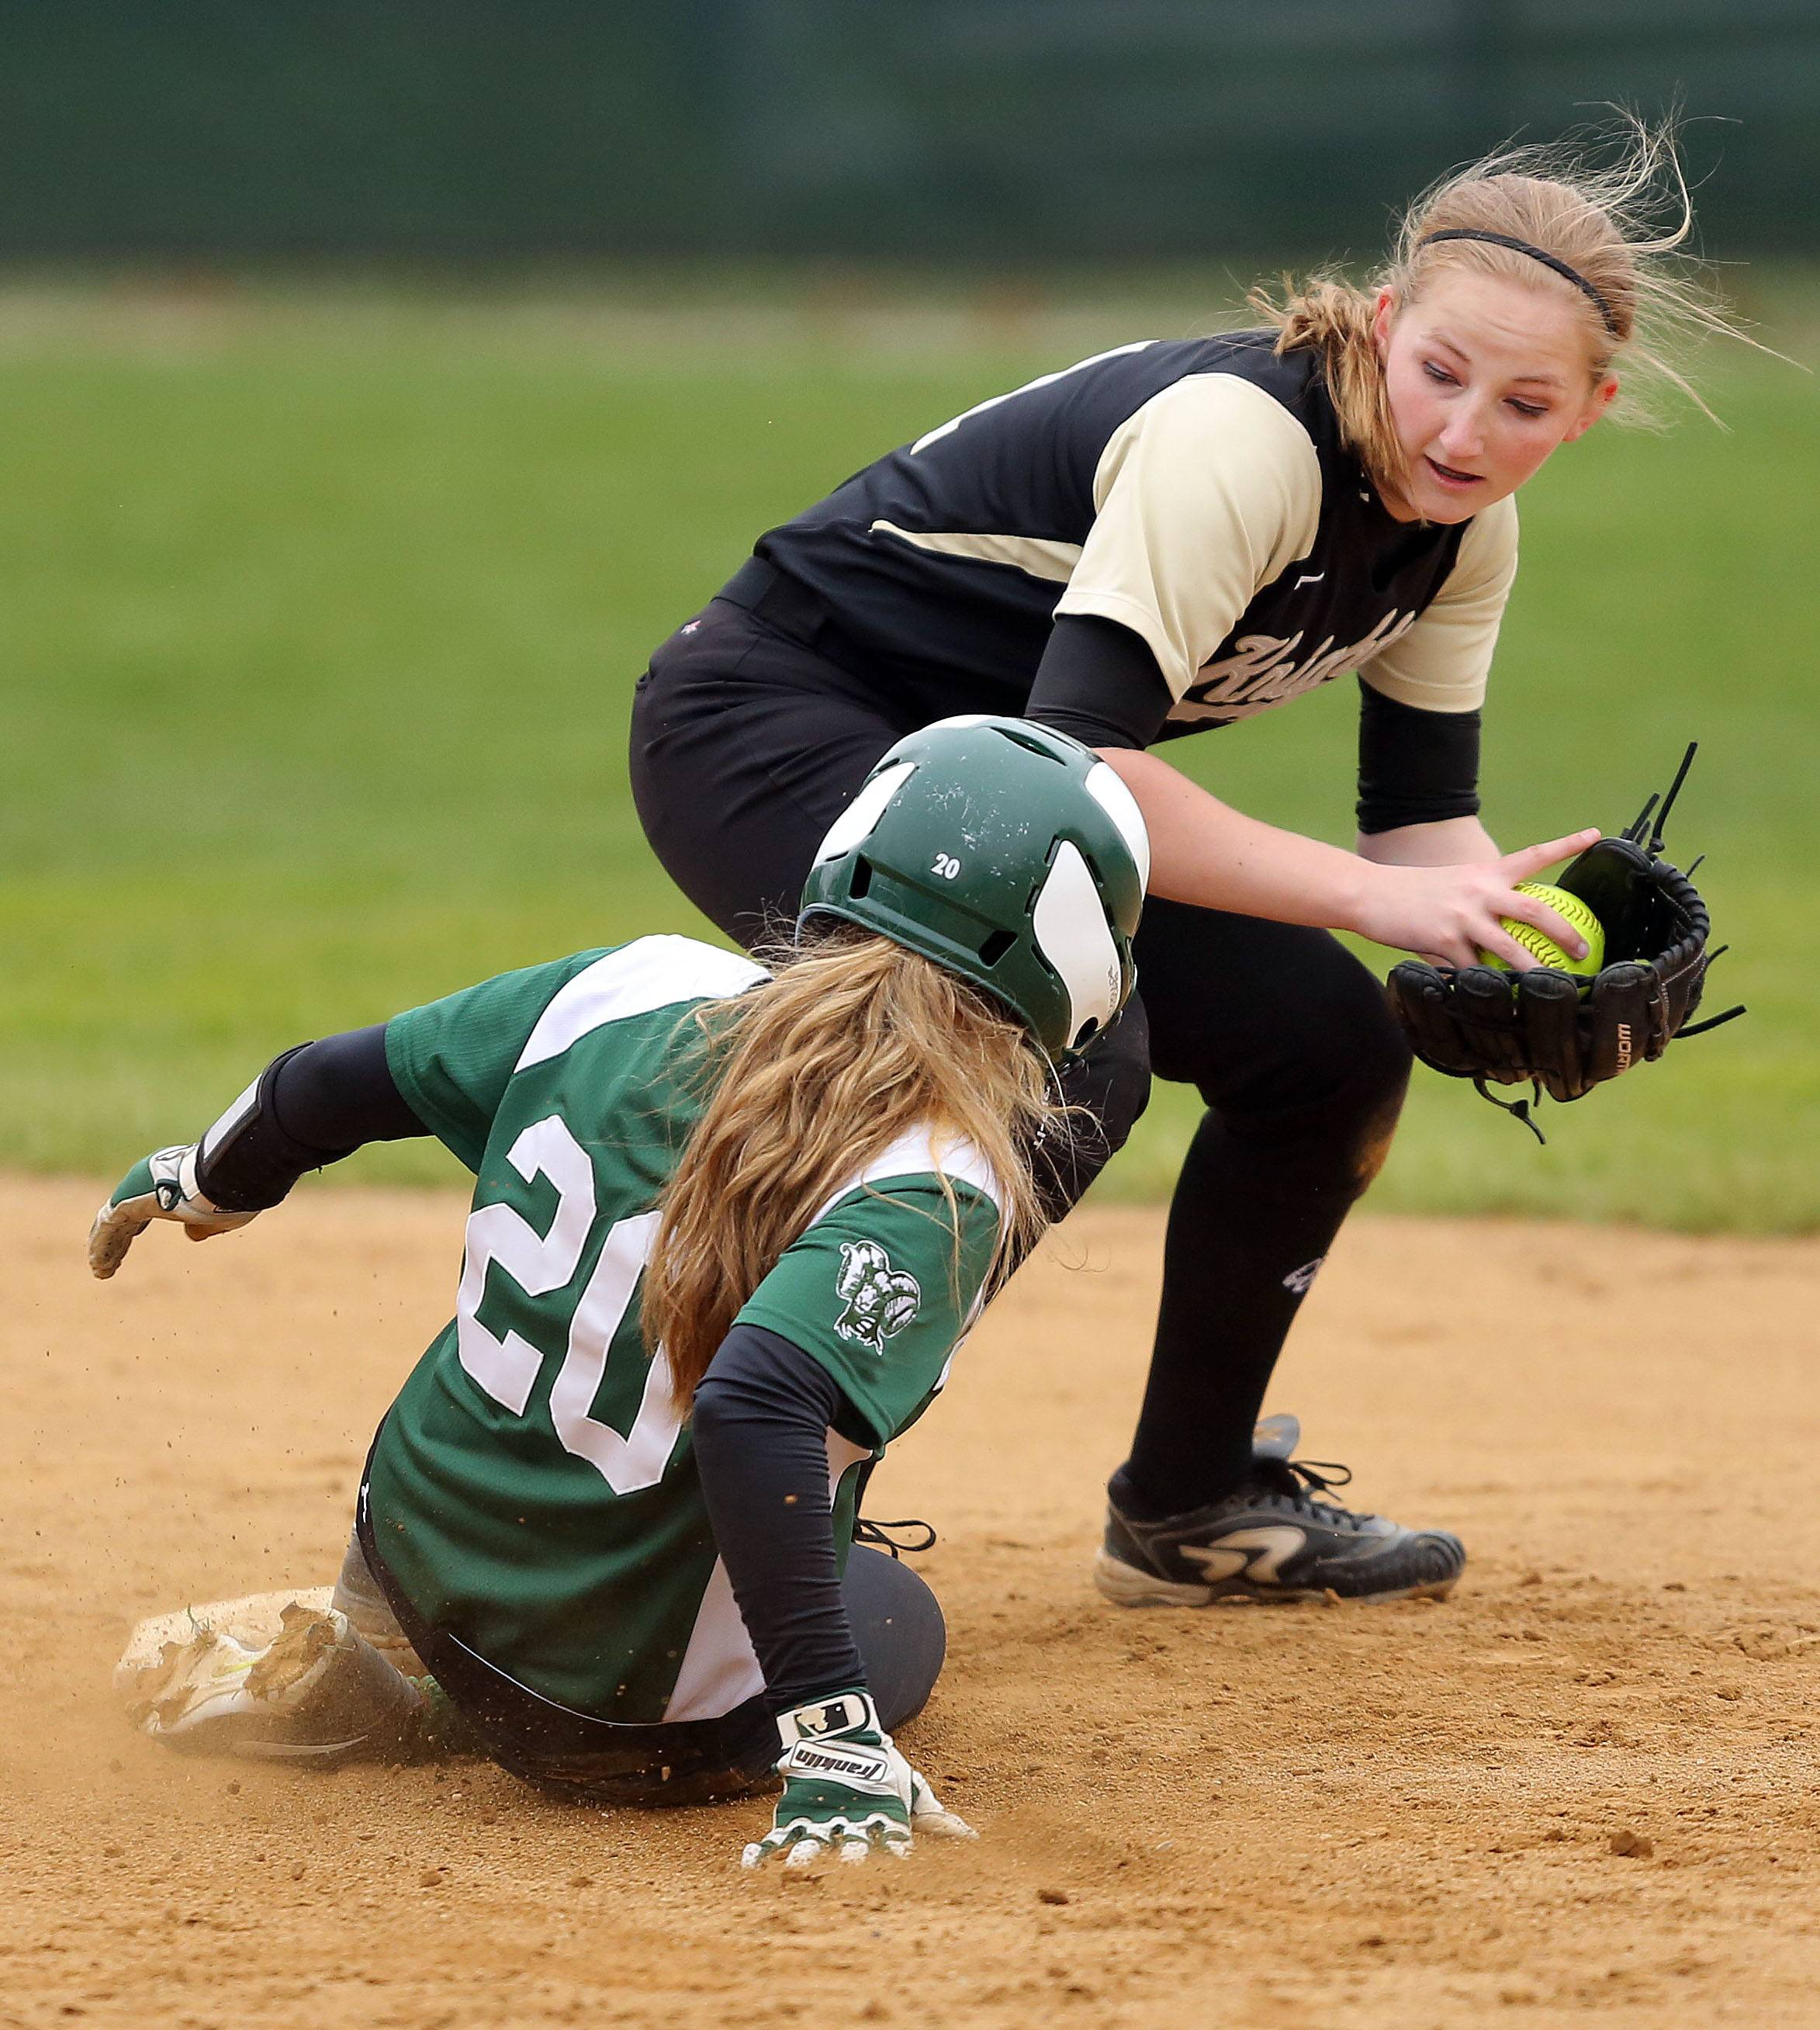 Grayslake Central's Teagan Truskowski, bottom, slides safely into second as Grayslake North's Jessica Vaughn makes the play Monday at Grayslake Central.